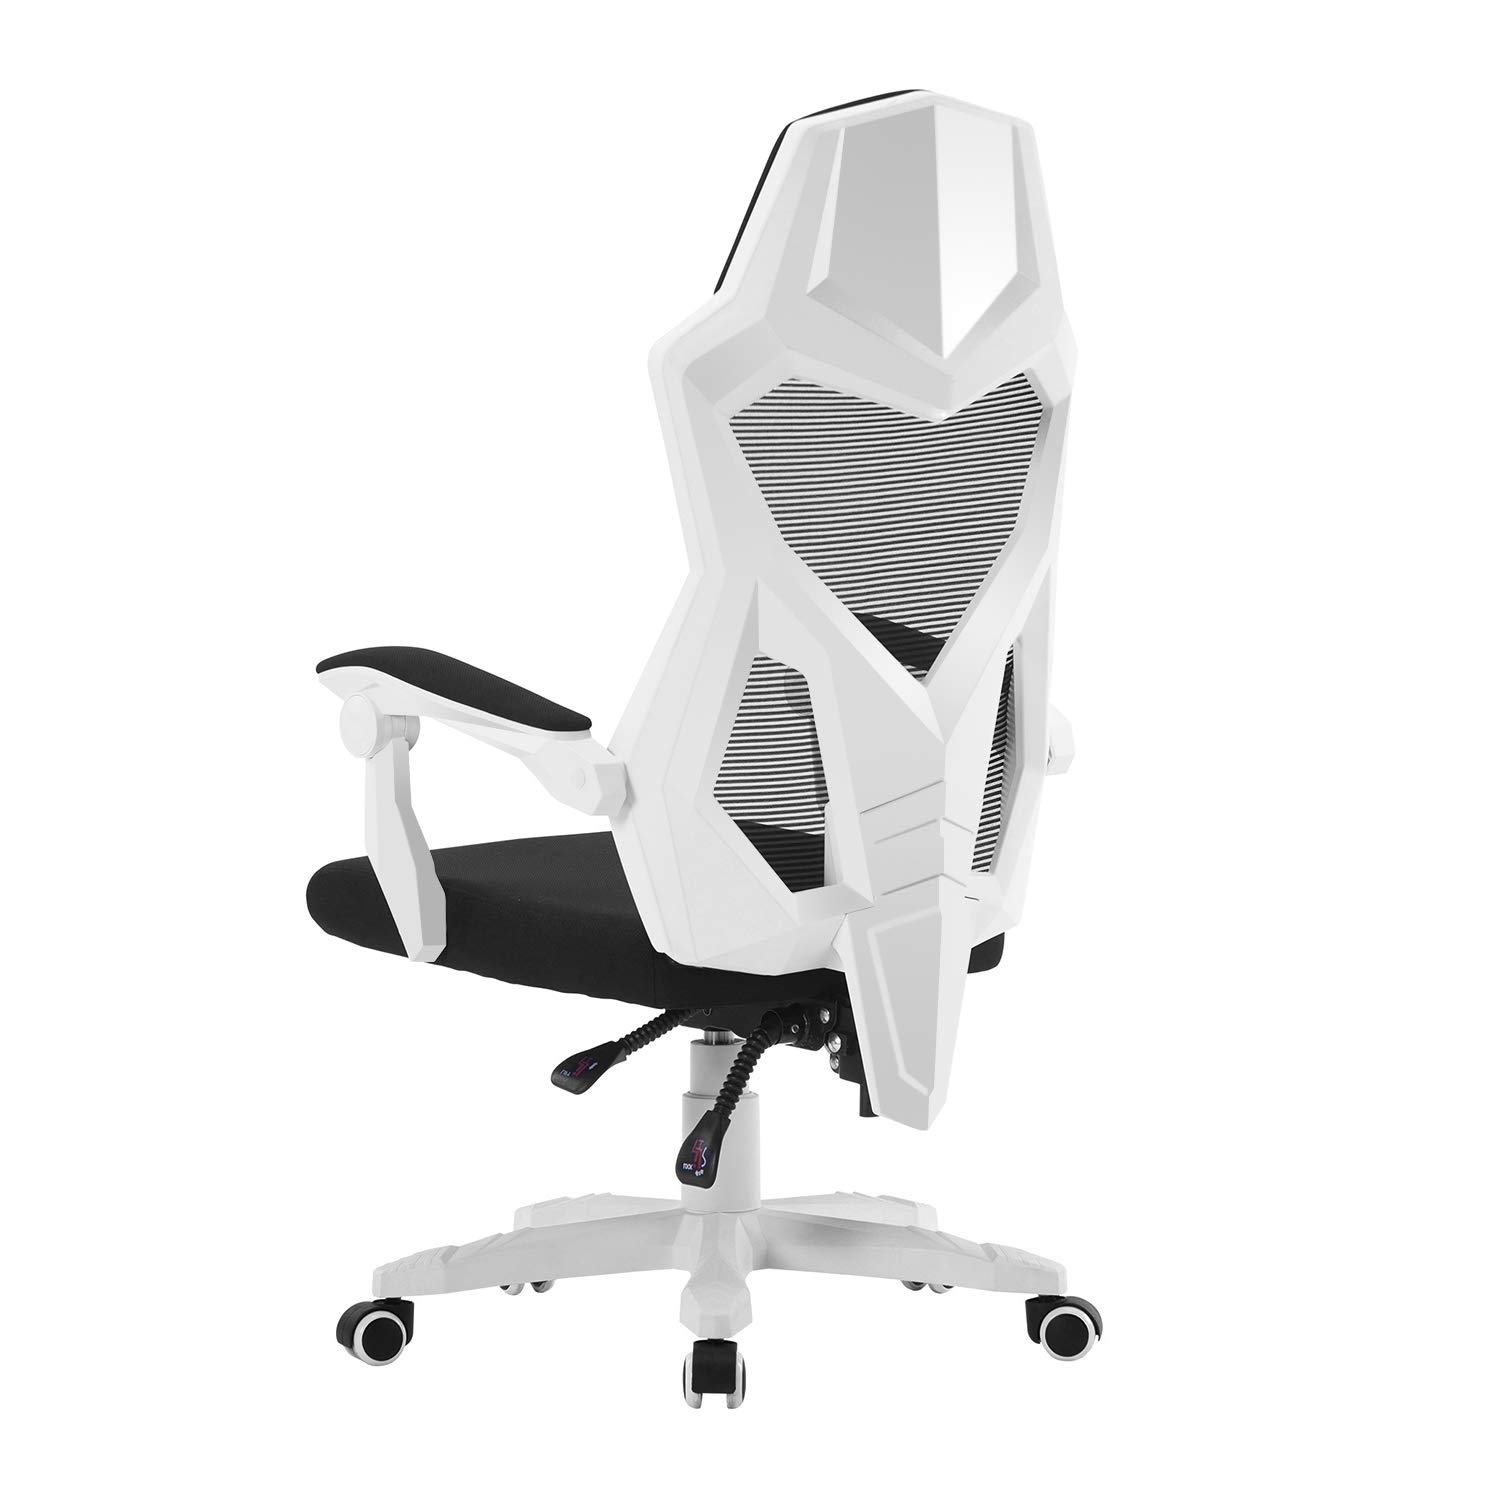 HOMEFUN Ergonomic Office Chair, High Back Adjustable Mesh Recliner Chair, Desk Task Chair with Armrests White by HOMEFUN